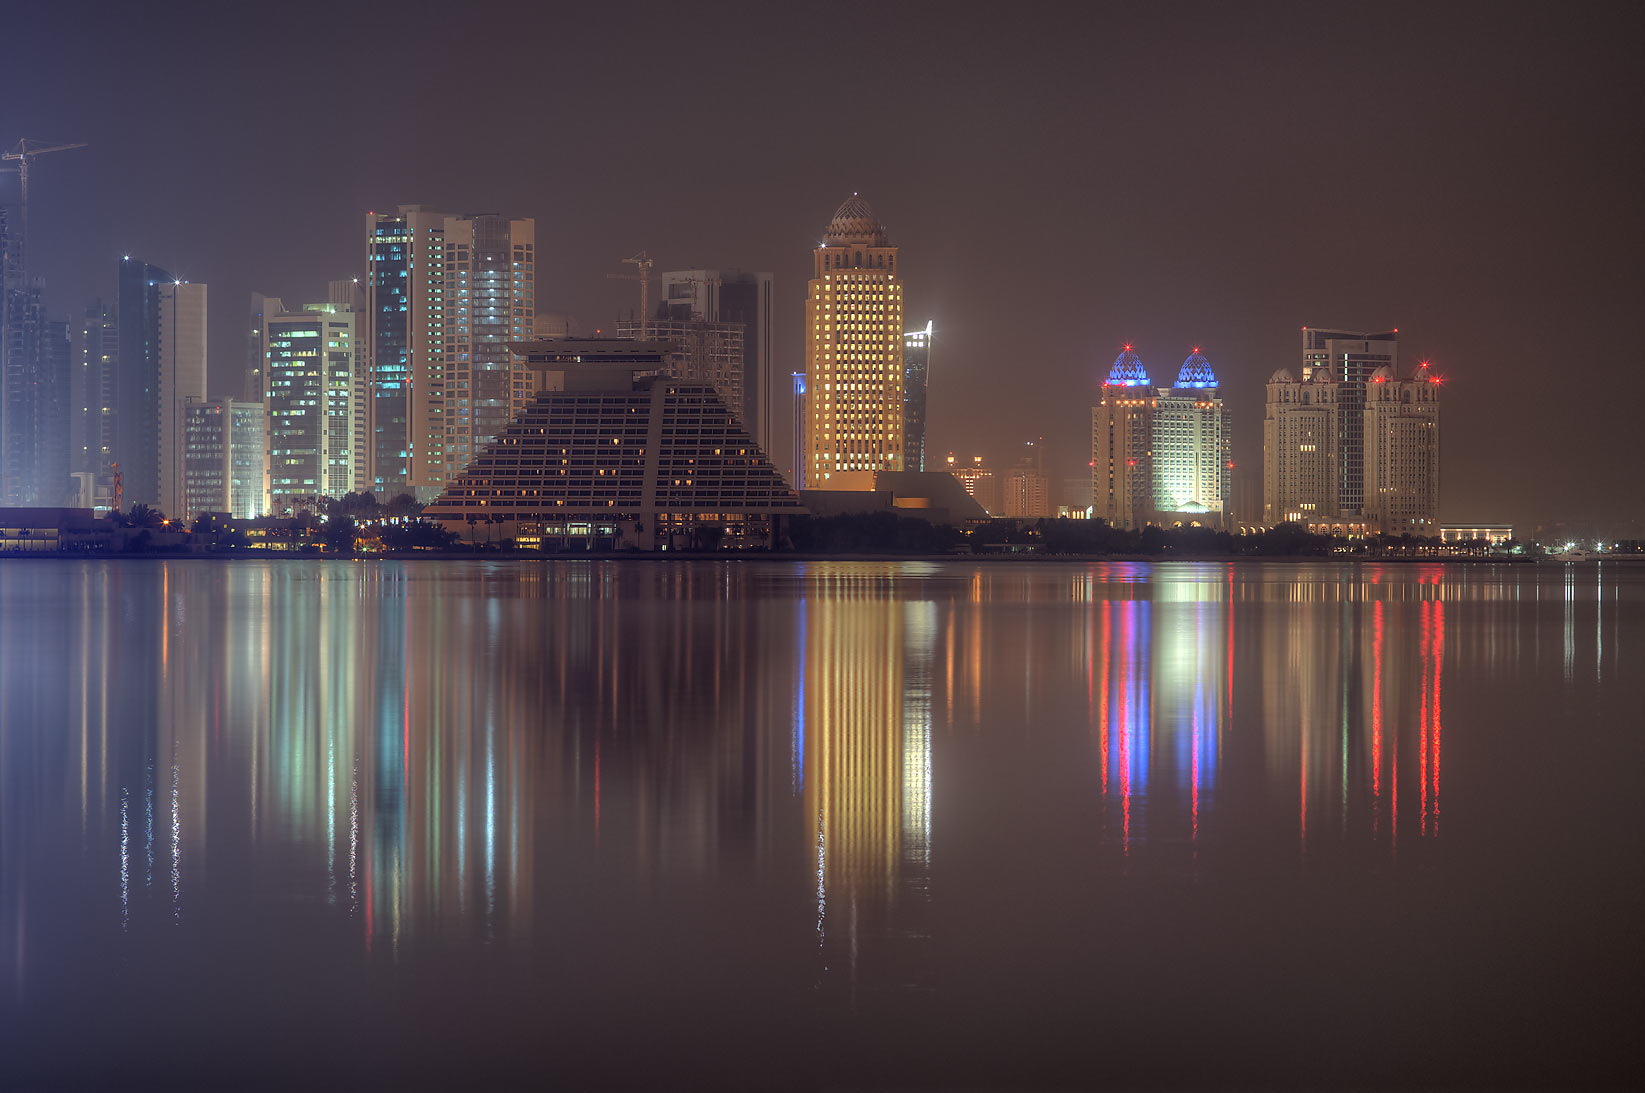 Sheraton Hotel and West Bay across the gulf, view from Corniche. Doha, Qatar